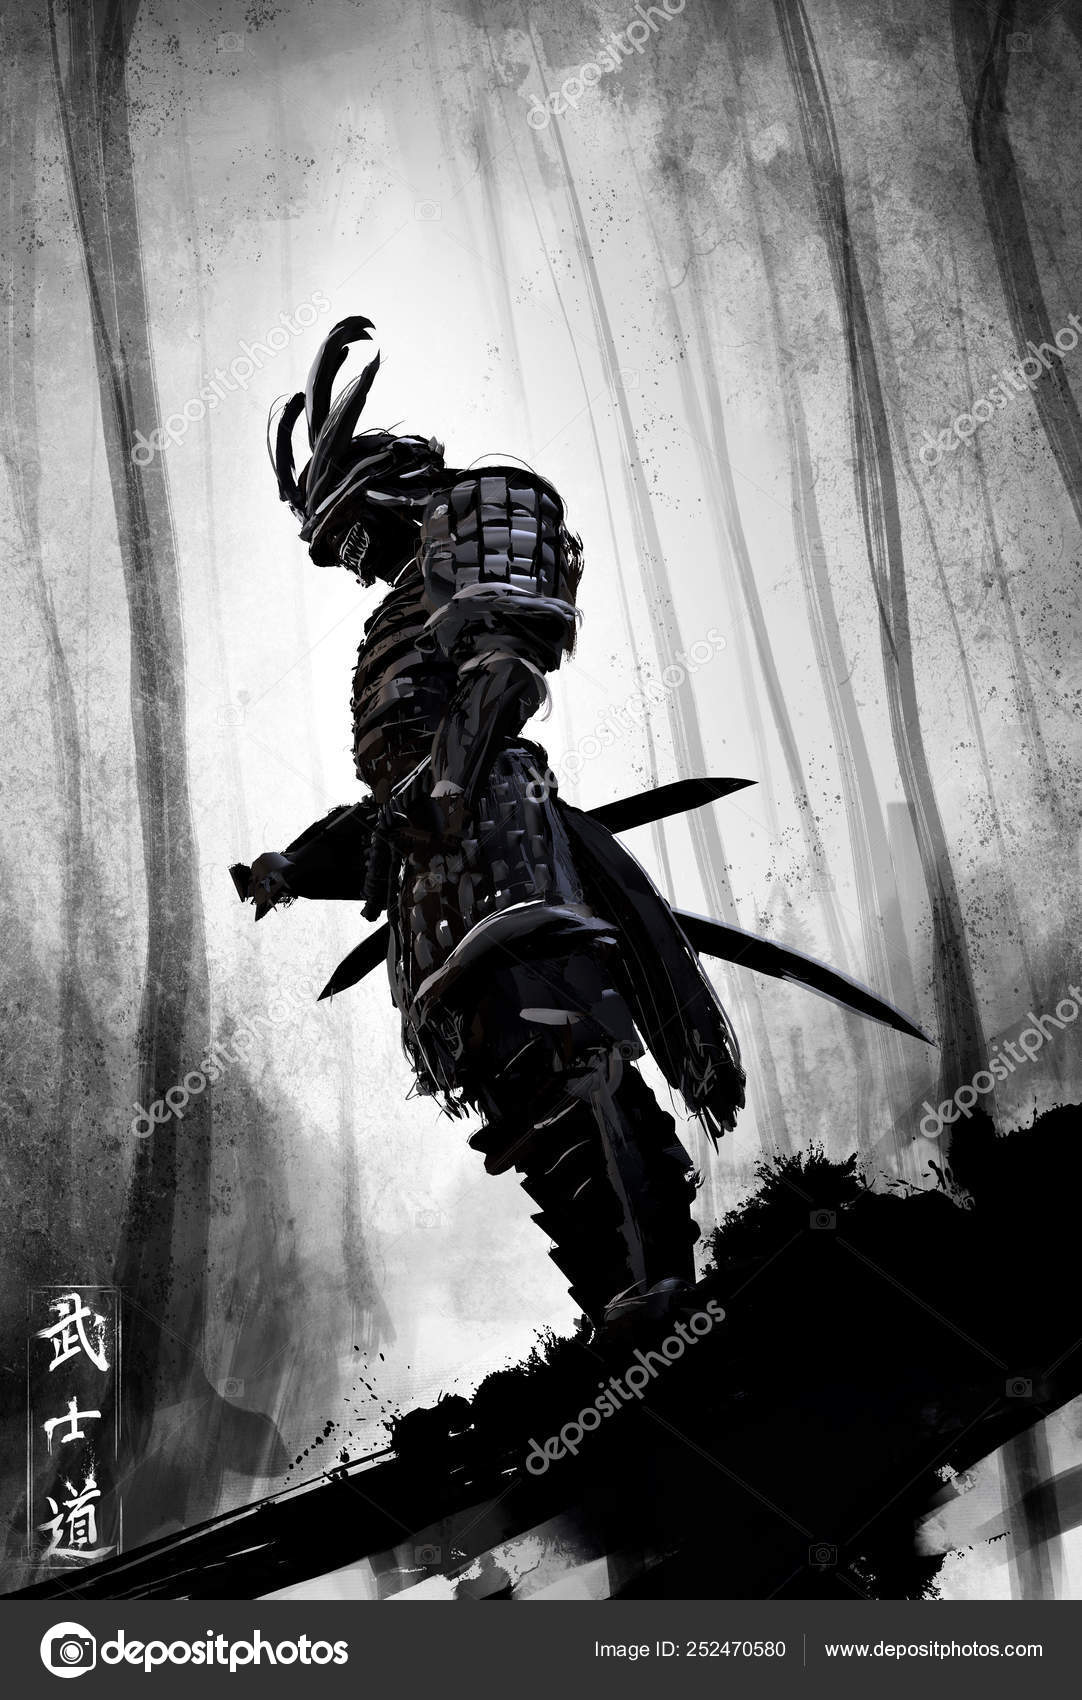 Samurai Stands Forest Dynamic Perspective Inscription Means Japanese Way Warrior Stock Photo C Warmtail 252470580